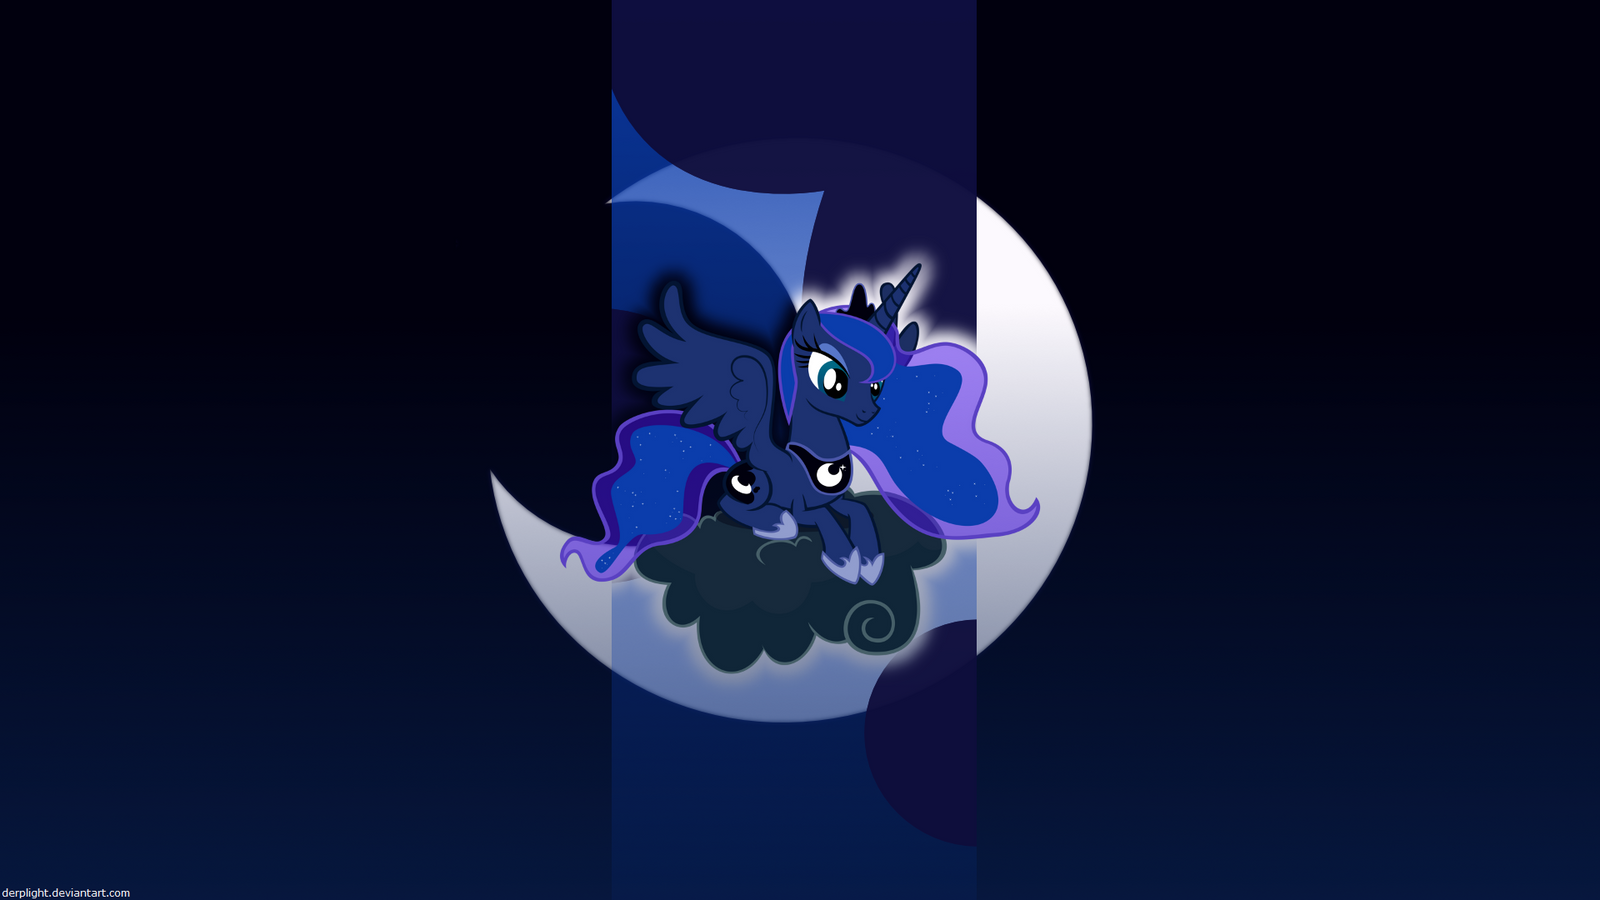 Princess Luna Wallpaper 1920x1080 By Derplight On DeviantArt